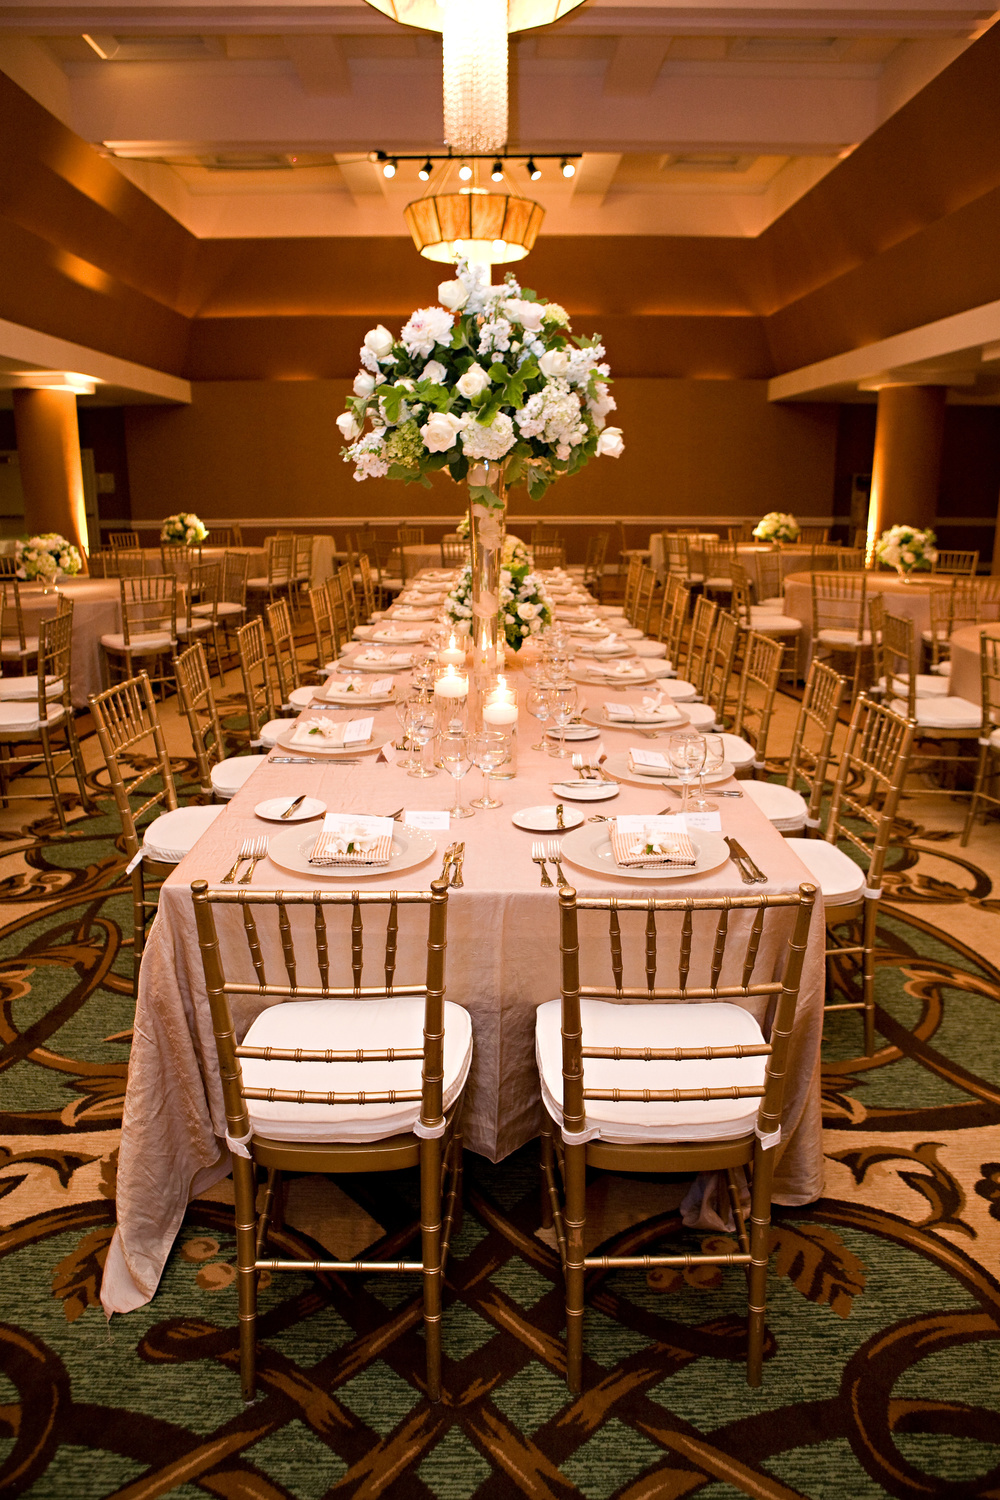 San Francisco Wedding Coordination and Planning by Bella Notte Events